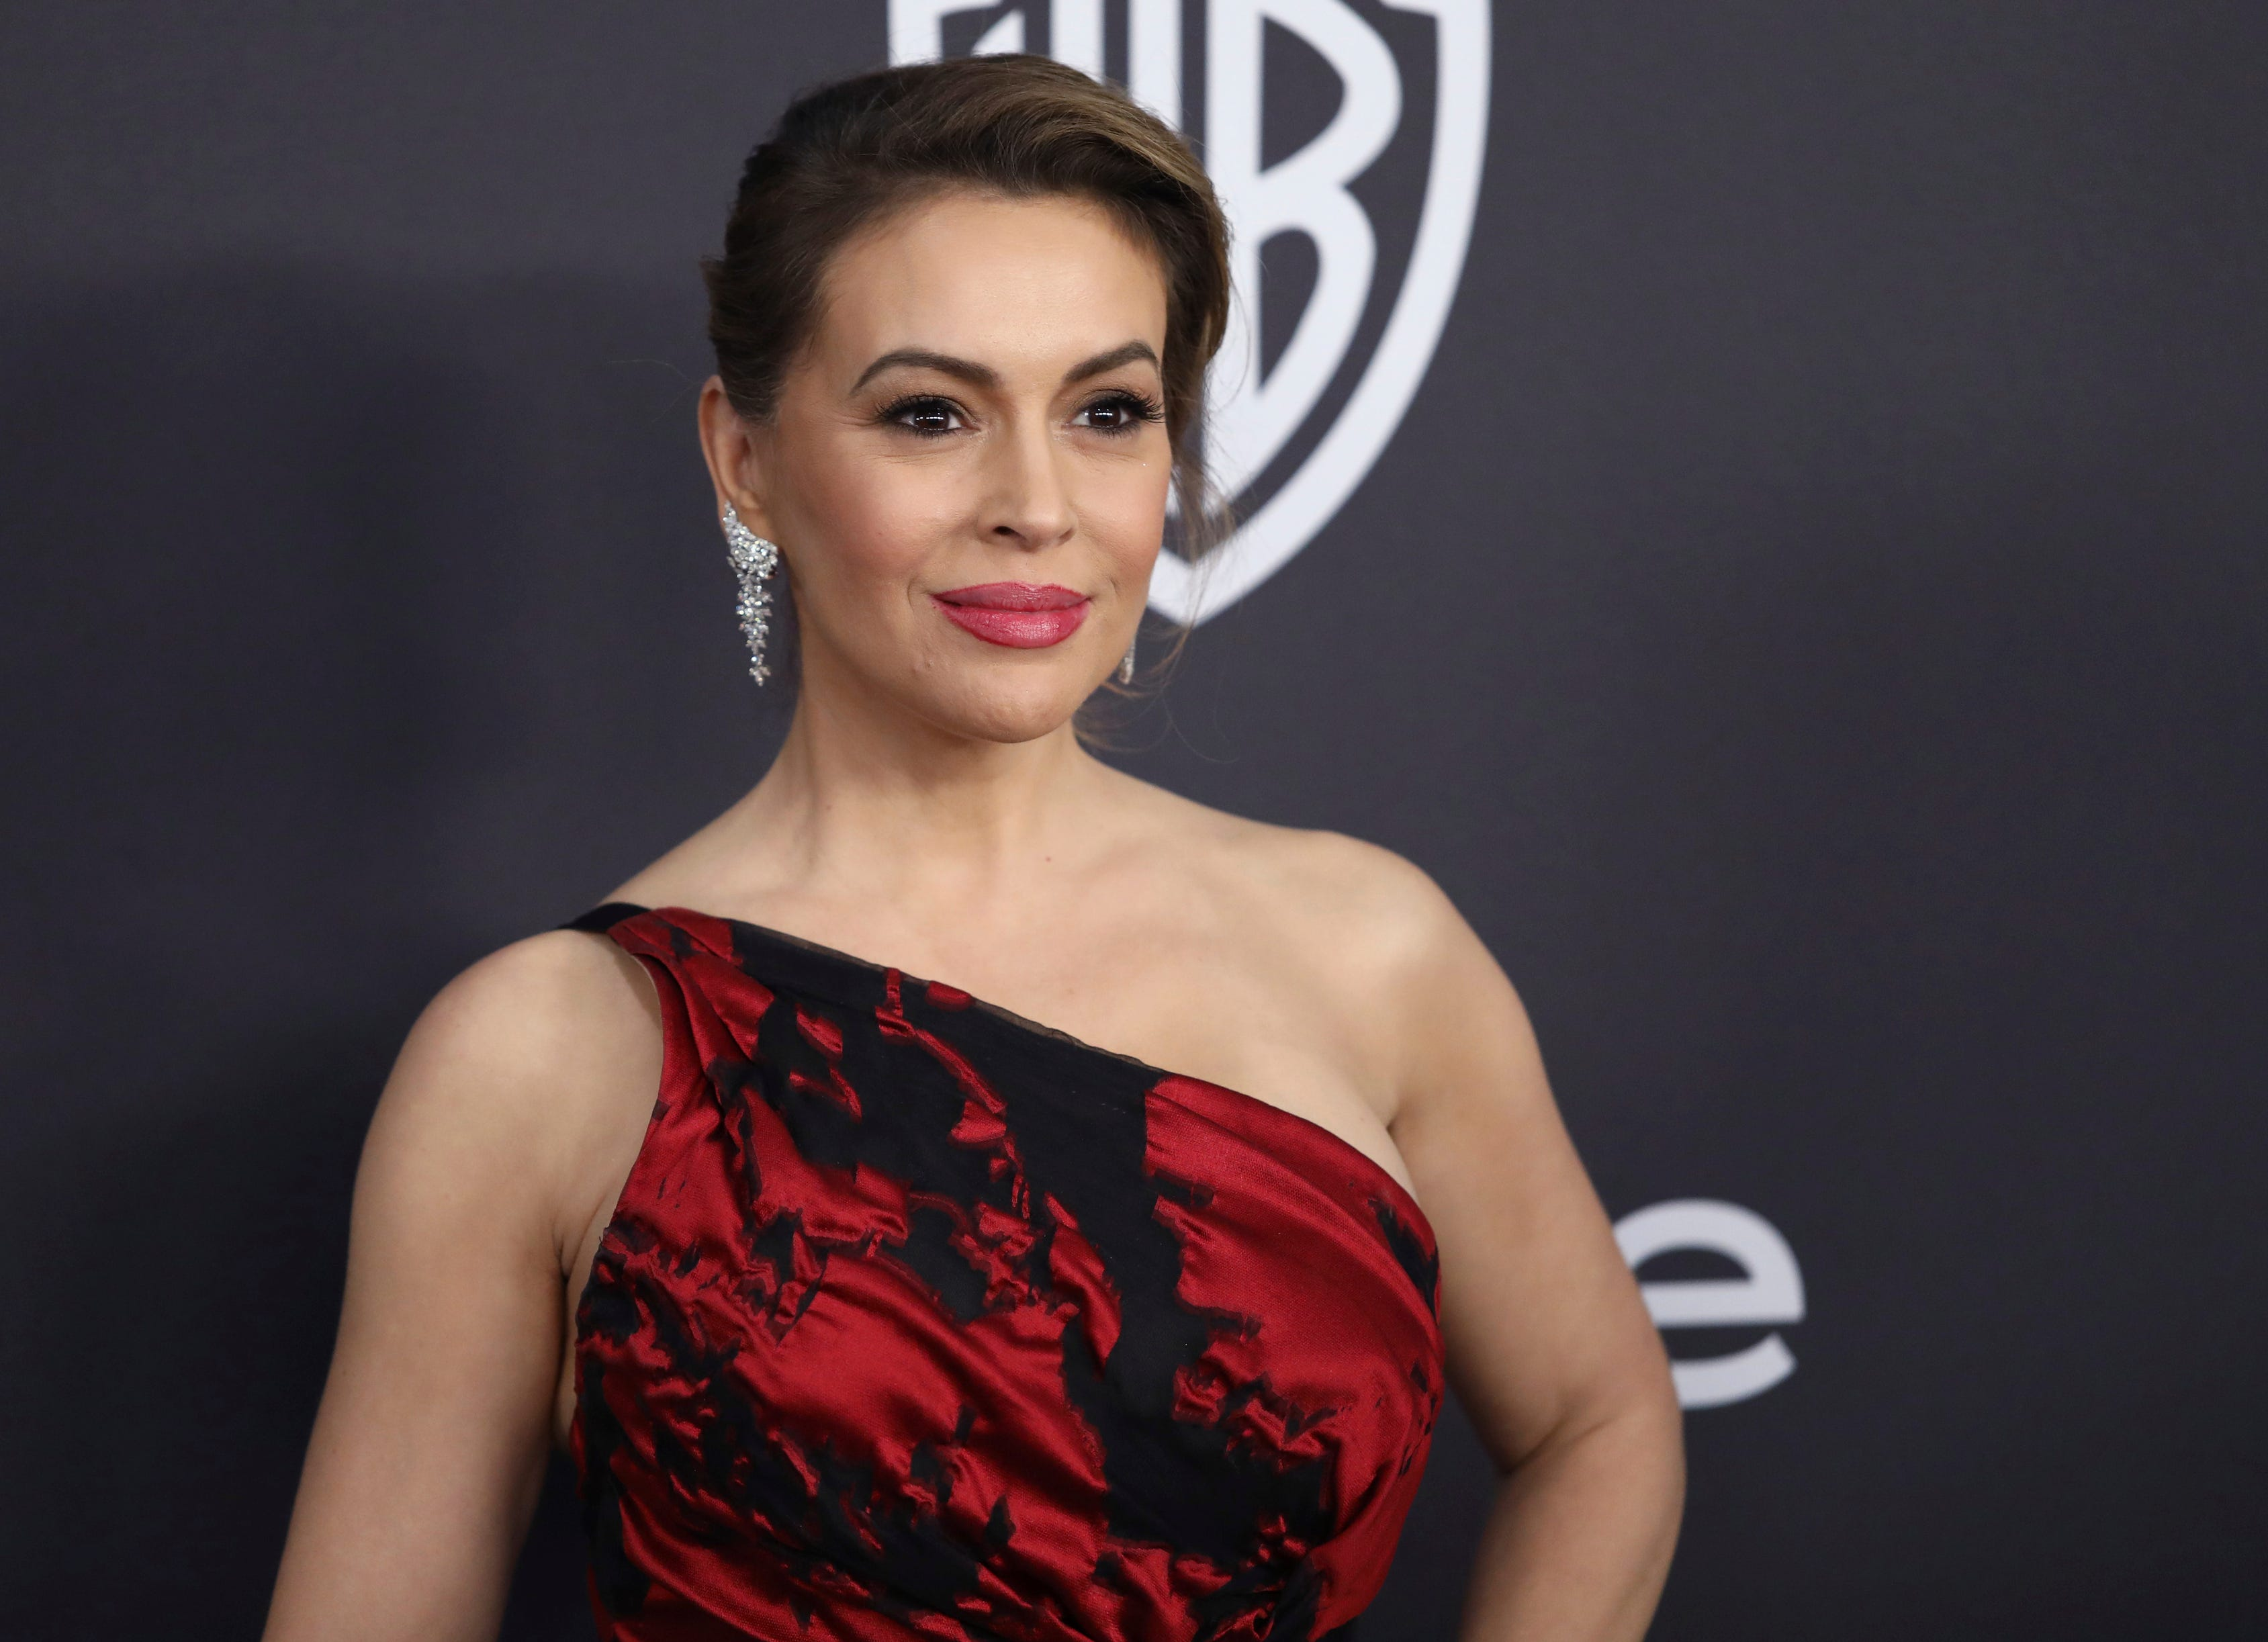 Alyssa Milano explains sex strike: 'Extreme response' was needed to get national attention